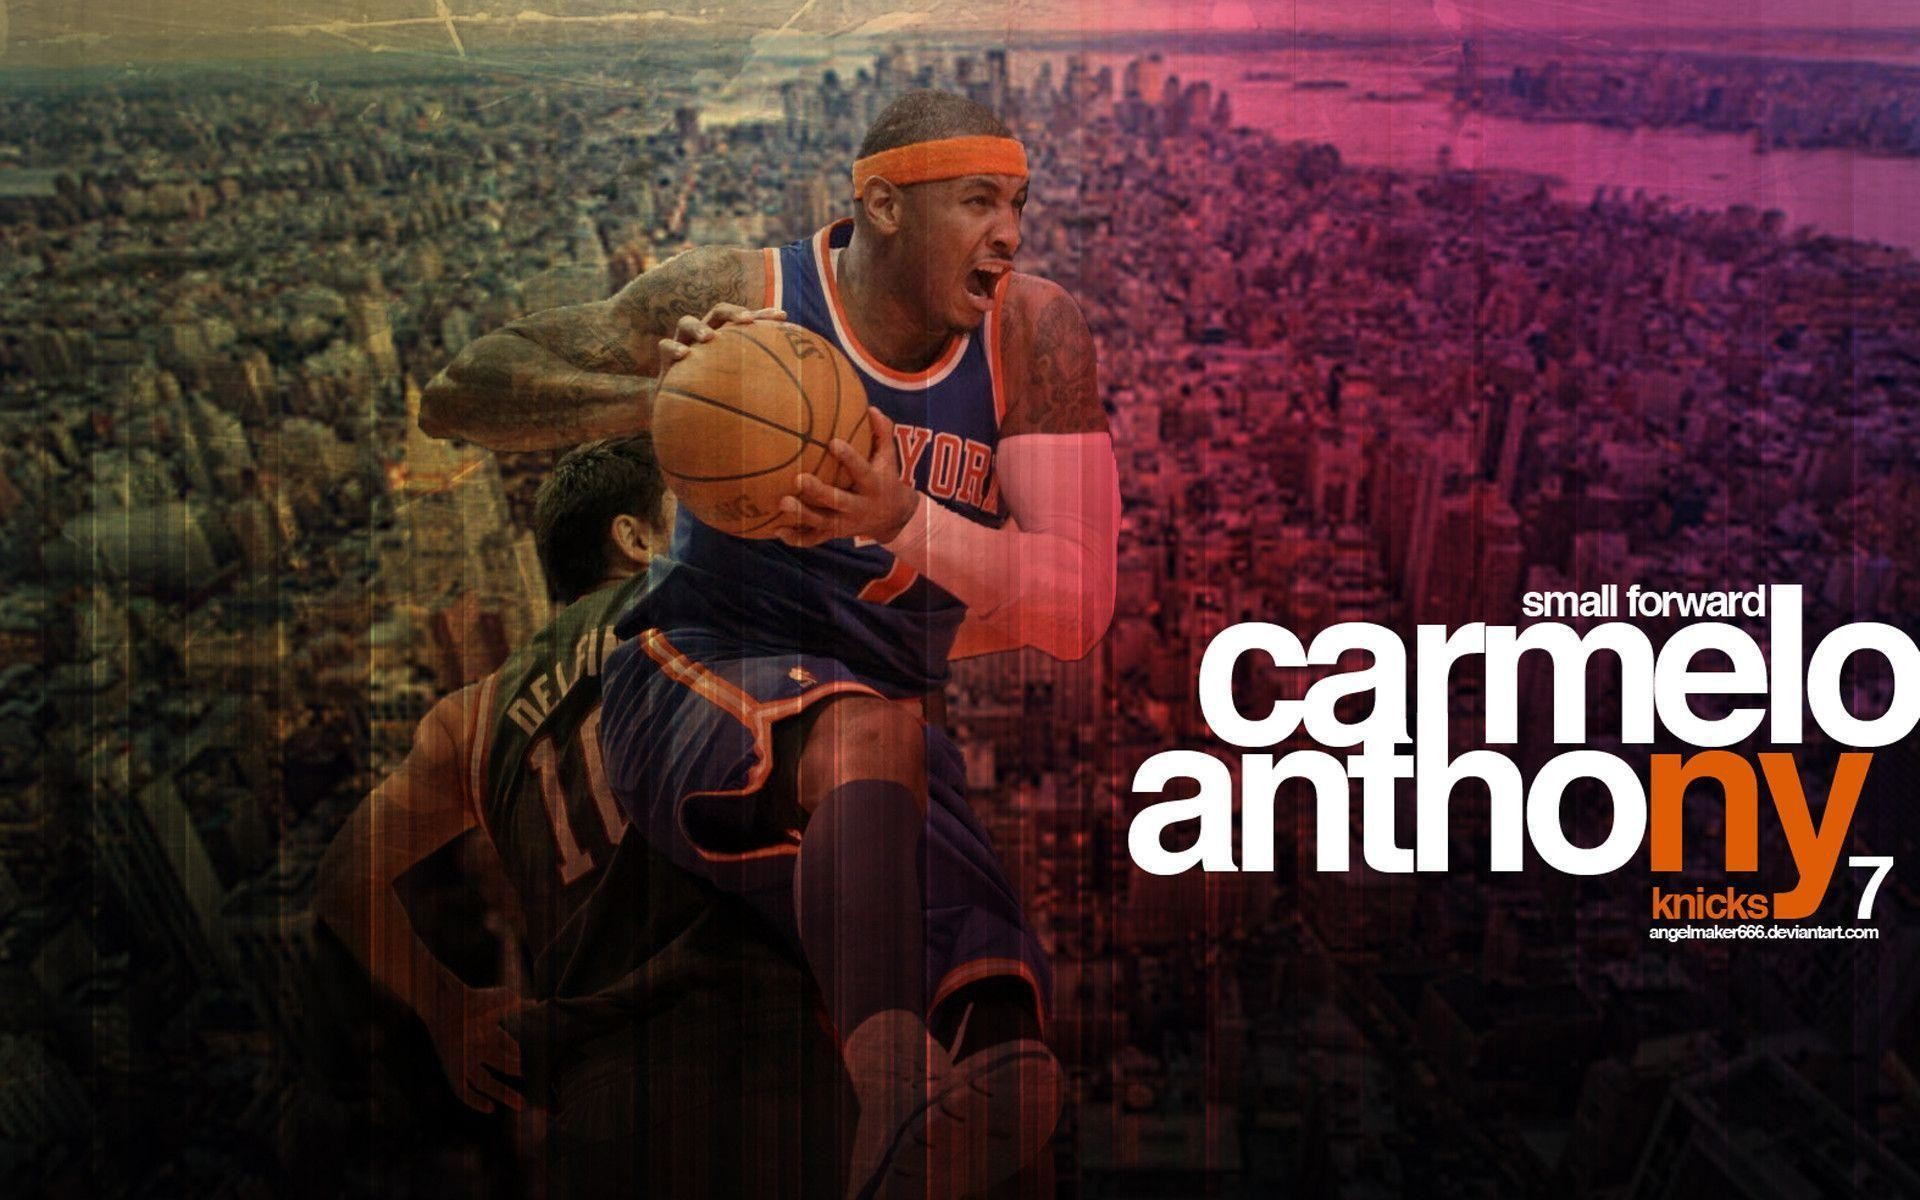 1920x1200 Knicks Wallpapers - Full HD wallpaper search